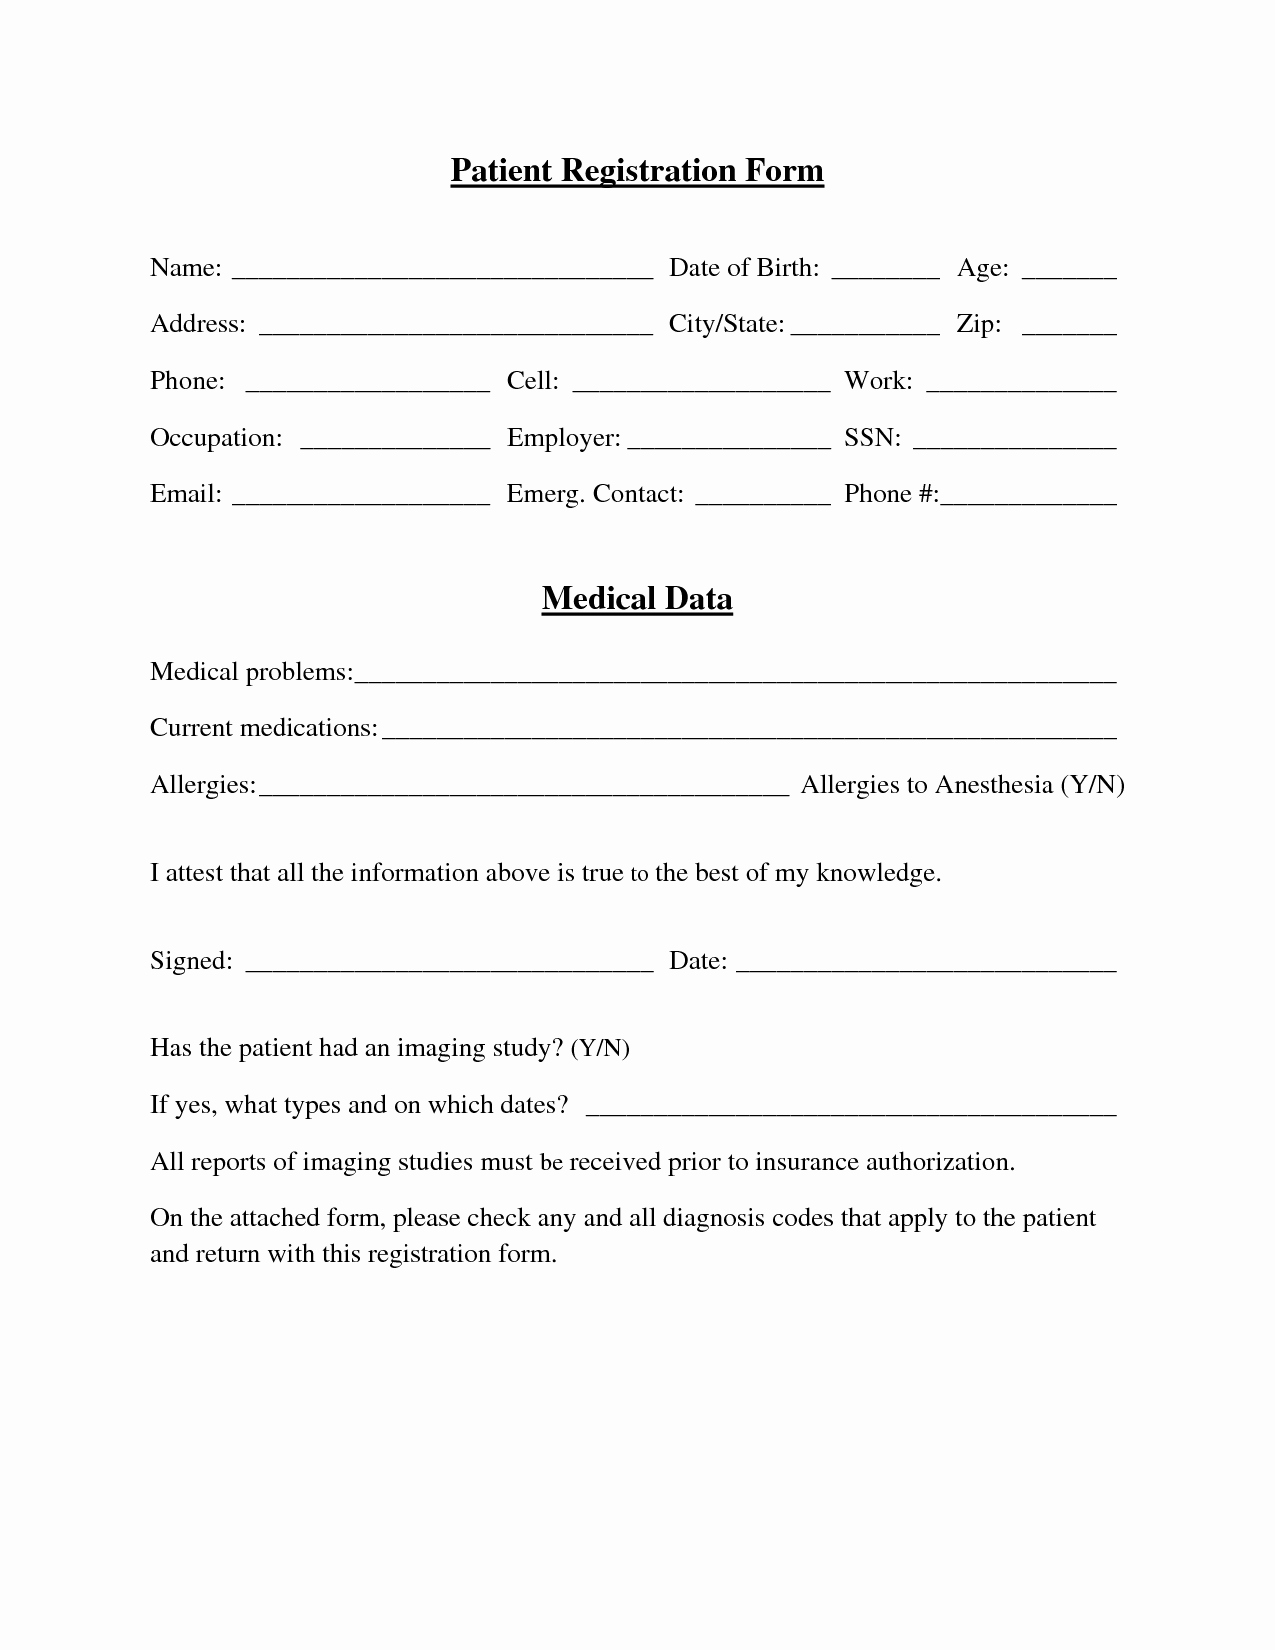 Patient Registration form Template Fresh Best S Of Medical Fice forms Templates Medical